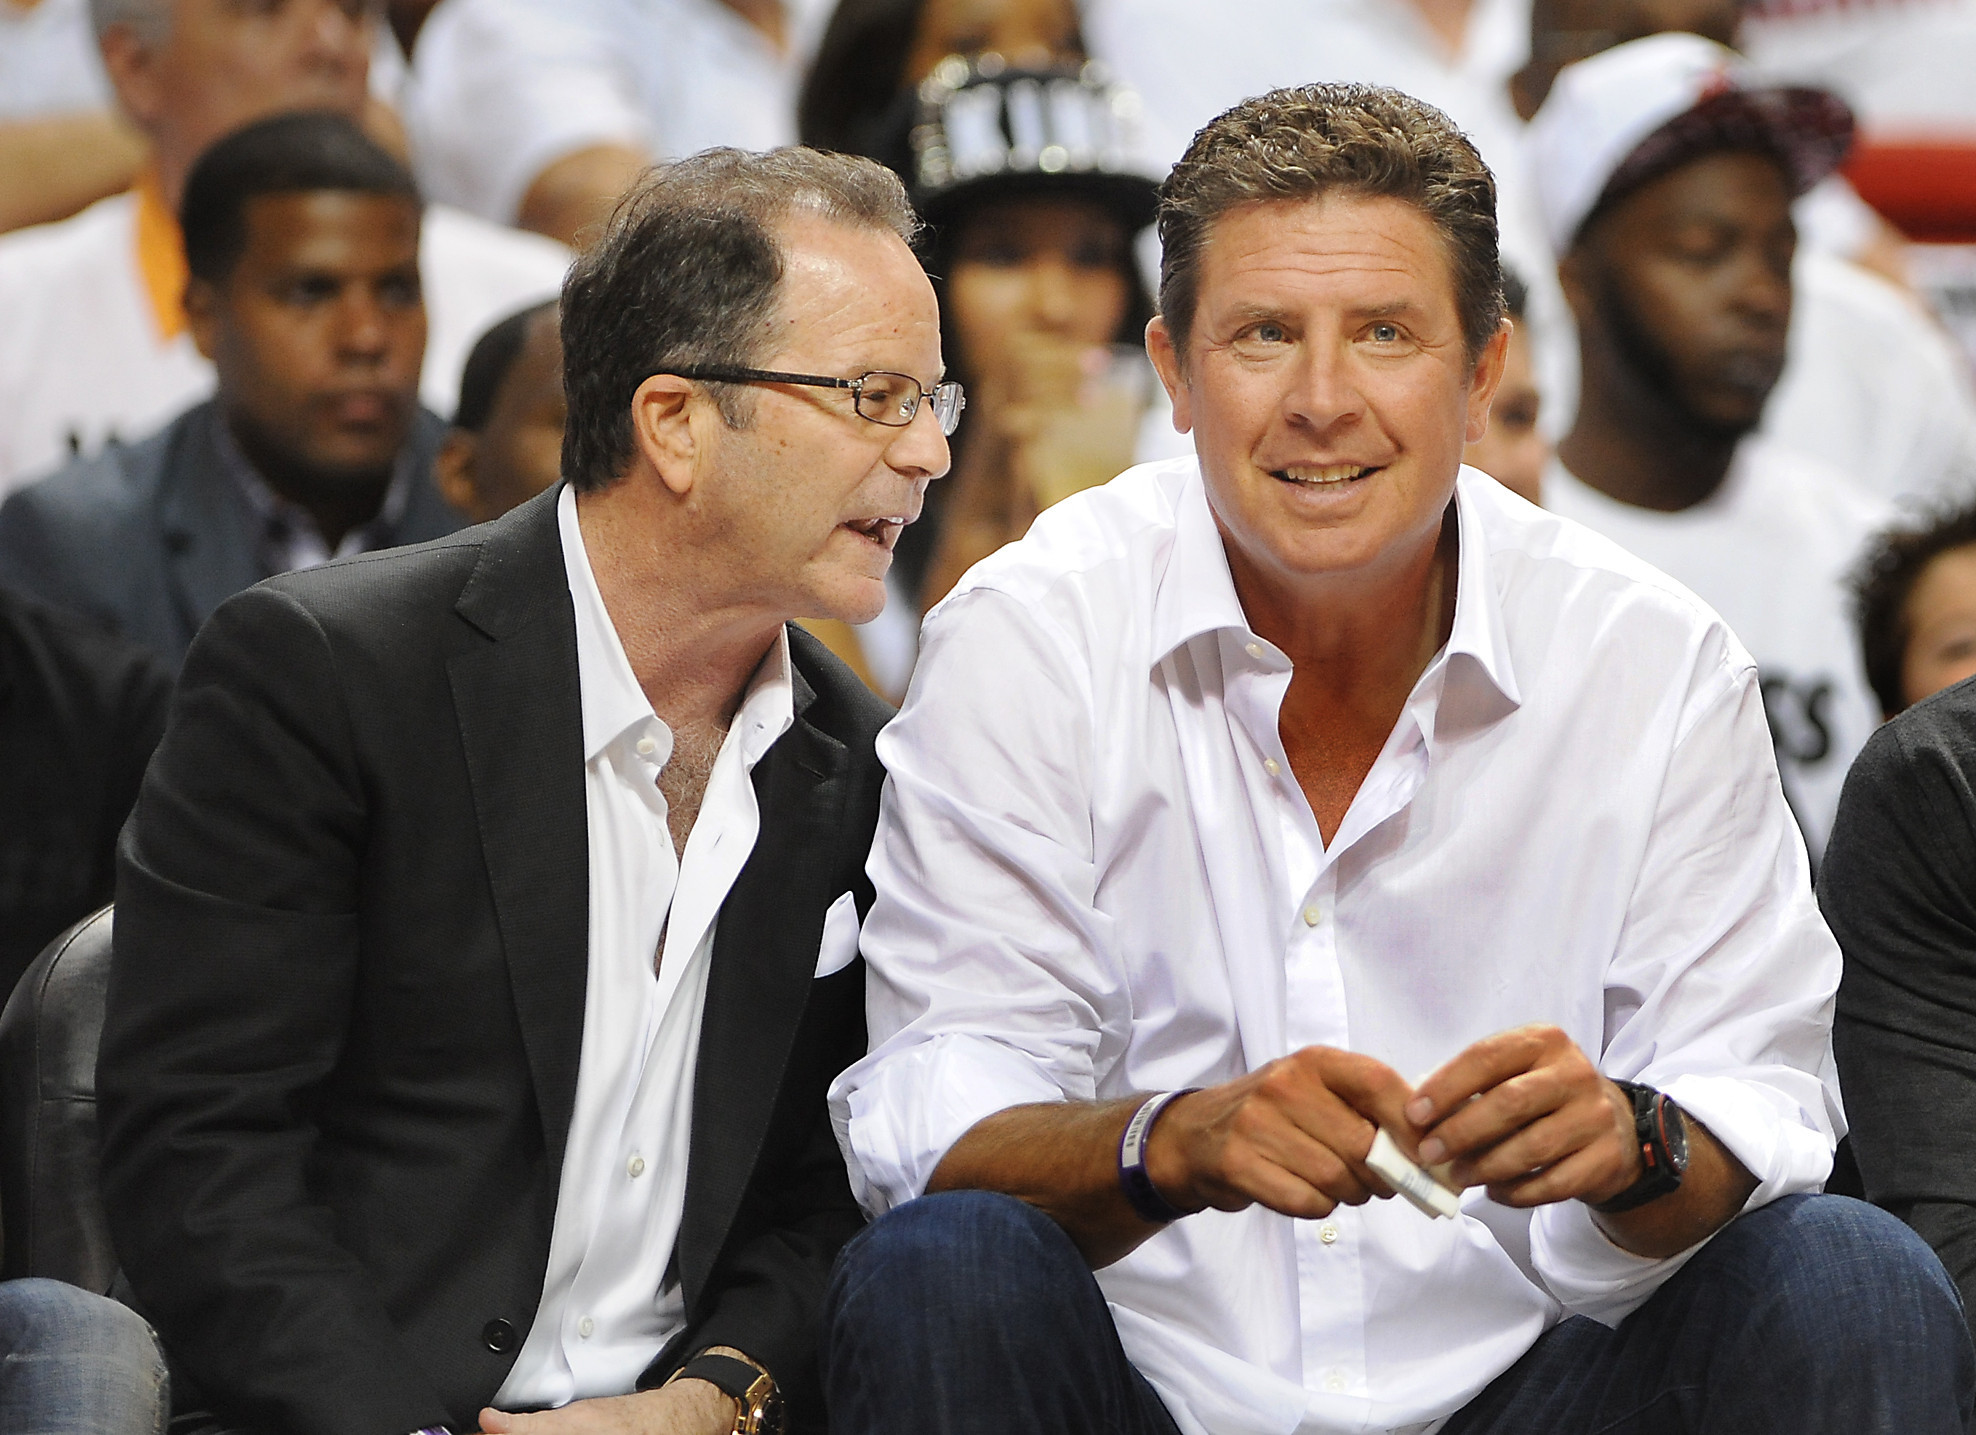 Celebs spotted at Miami Heat games - Dan Marino